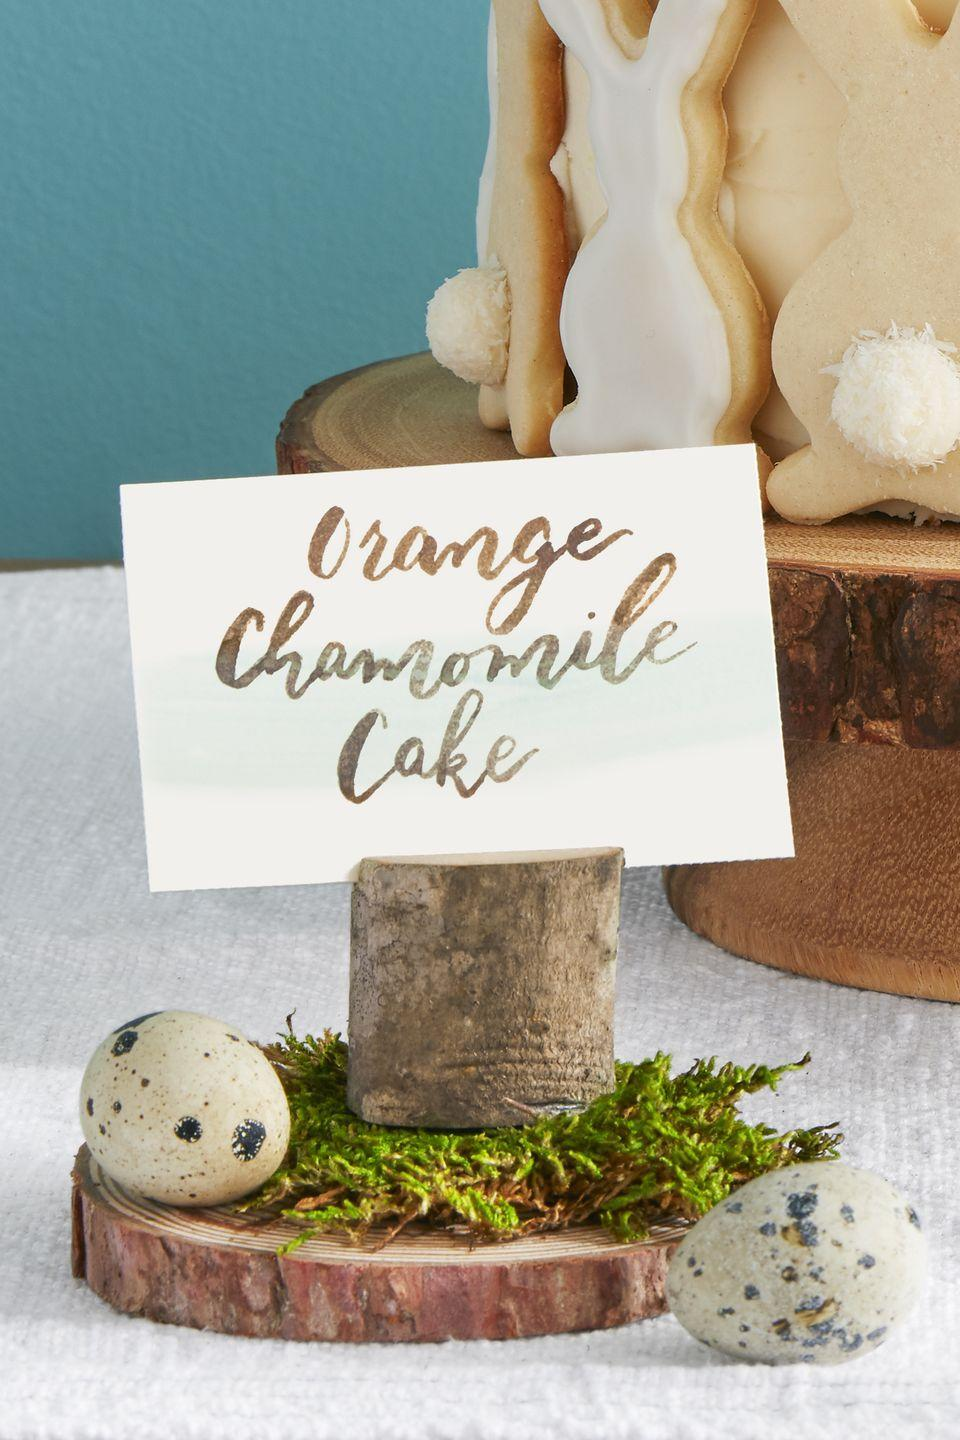 "<p>Add some pizzazz to your holiday buffet or food table with some rustic branches fashioned together to display the names of your dishes. Craft these pieces by cutting a thin sliver in a small piece of wood; place atop wood round and add moss and eggs.</p><p><a class=""link rapid-noclick-resp"" href=""https://www.amazon.com/Assorted-Natural-Hanging-Decorations-Ornaments/dp/B01FRDI8EY/ref=sr_1_2?tag=syn-yahoo-20&ascsubtag=%5Bartid%7C10050.g.1652%5Bsrc%7Cyahoo-us"" rel=""nofollow noopener"" target=""_blank"" data-ylk=""slk:SHOP WOOD ROUND"">SHOP WOOD ROUND</a></p>"